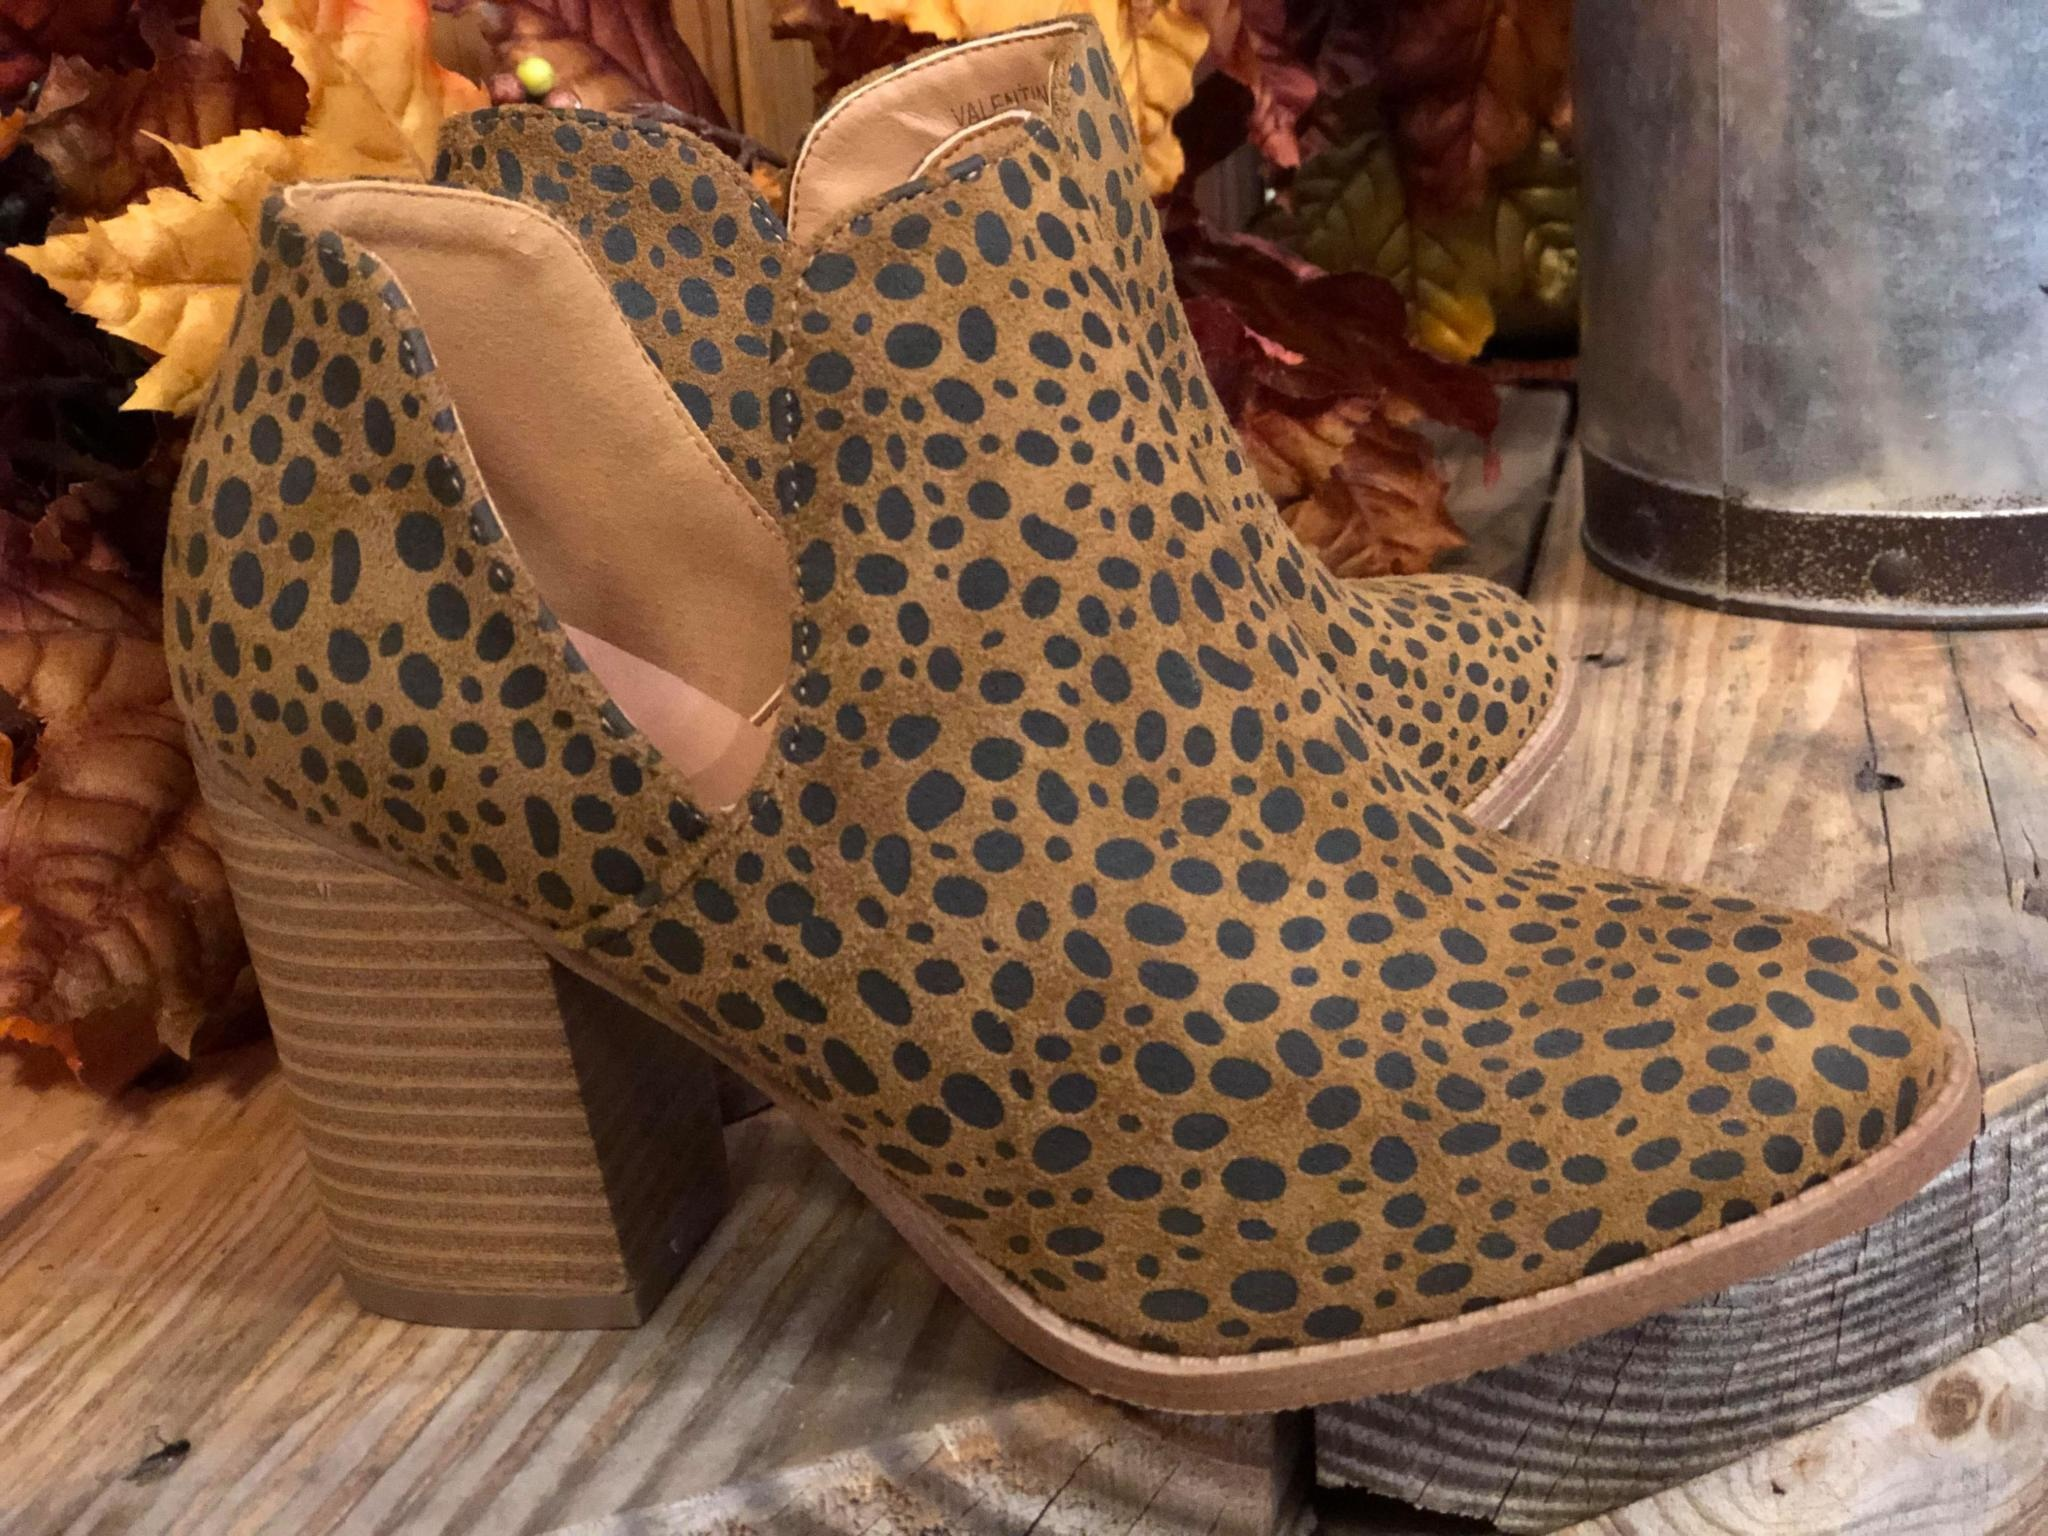 The Cheetah Bootie